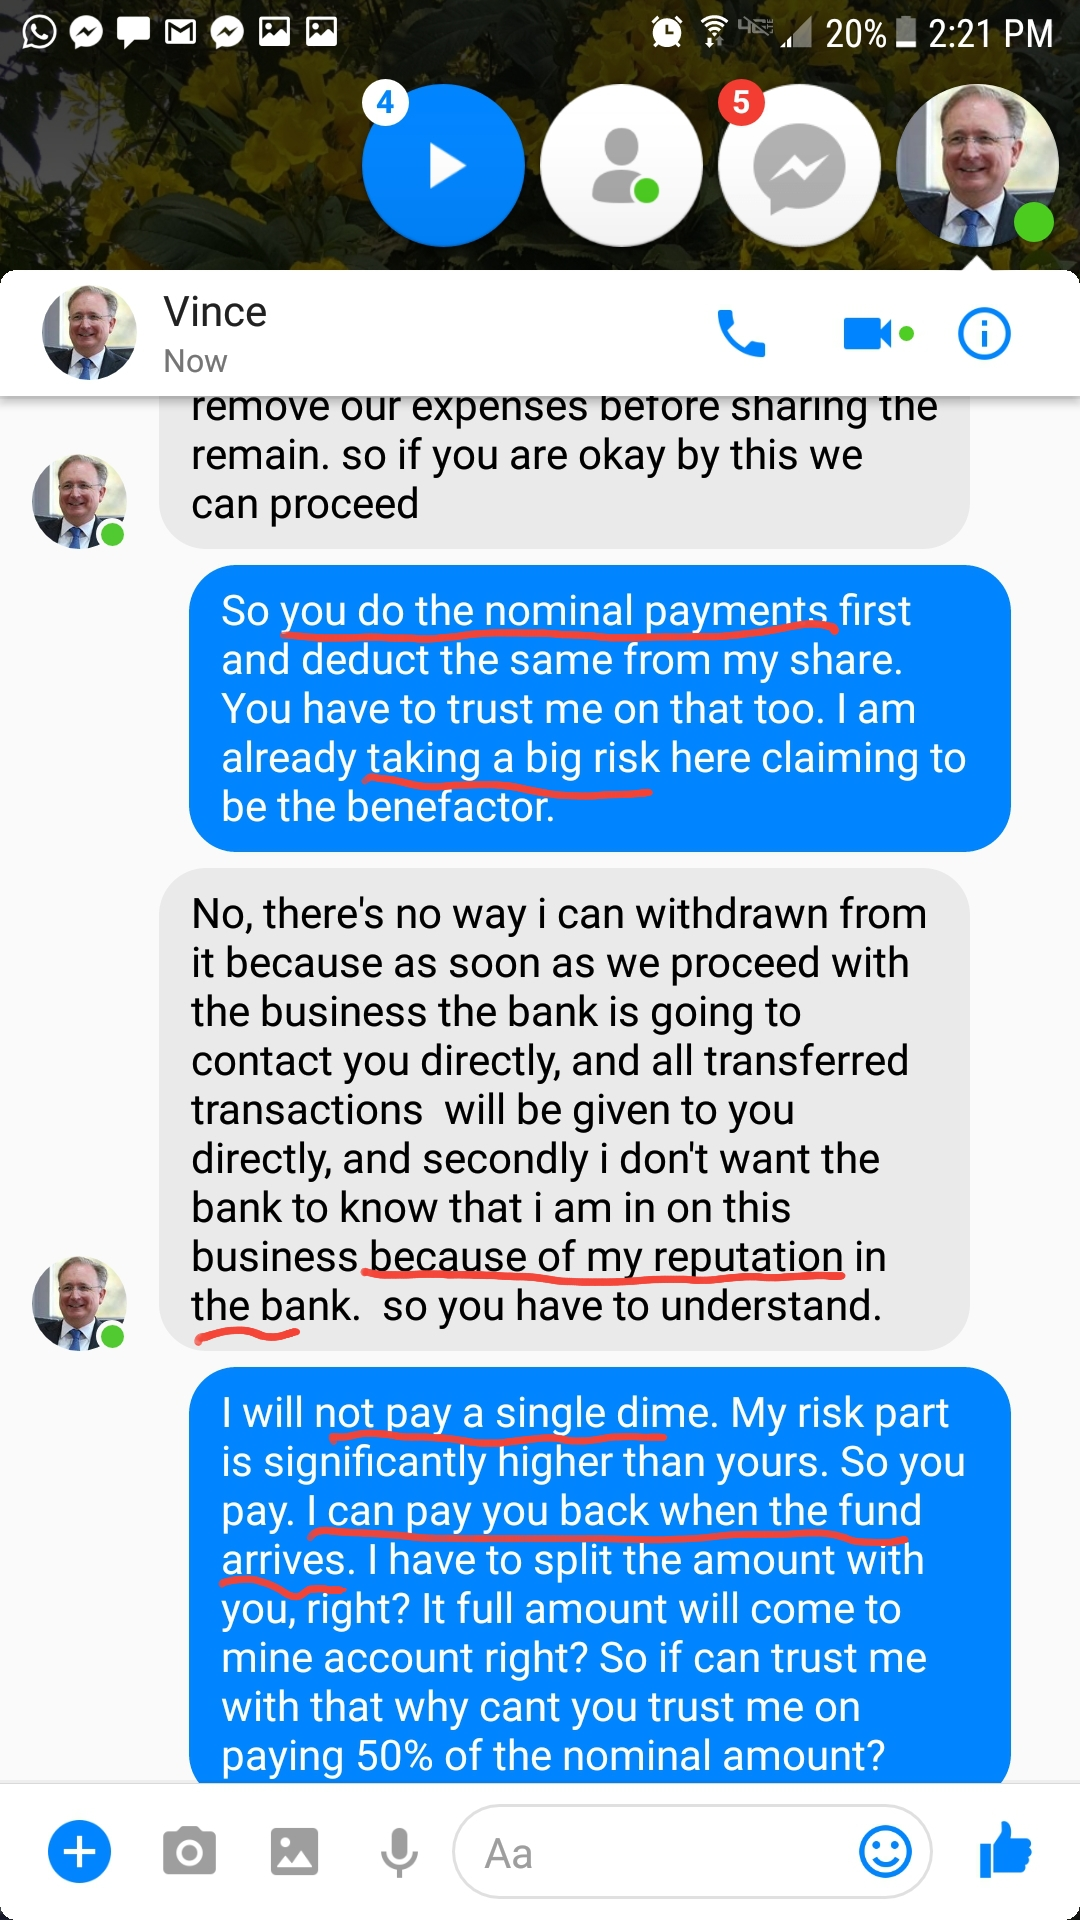 I tell him to do those nominal payments first and I can pay them when the fund arrives.